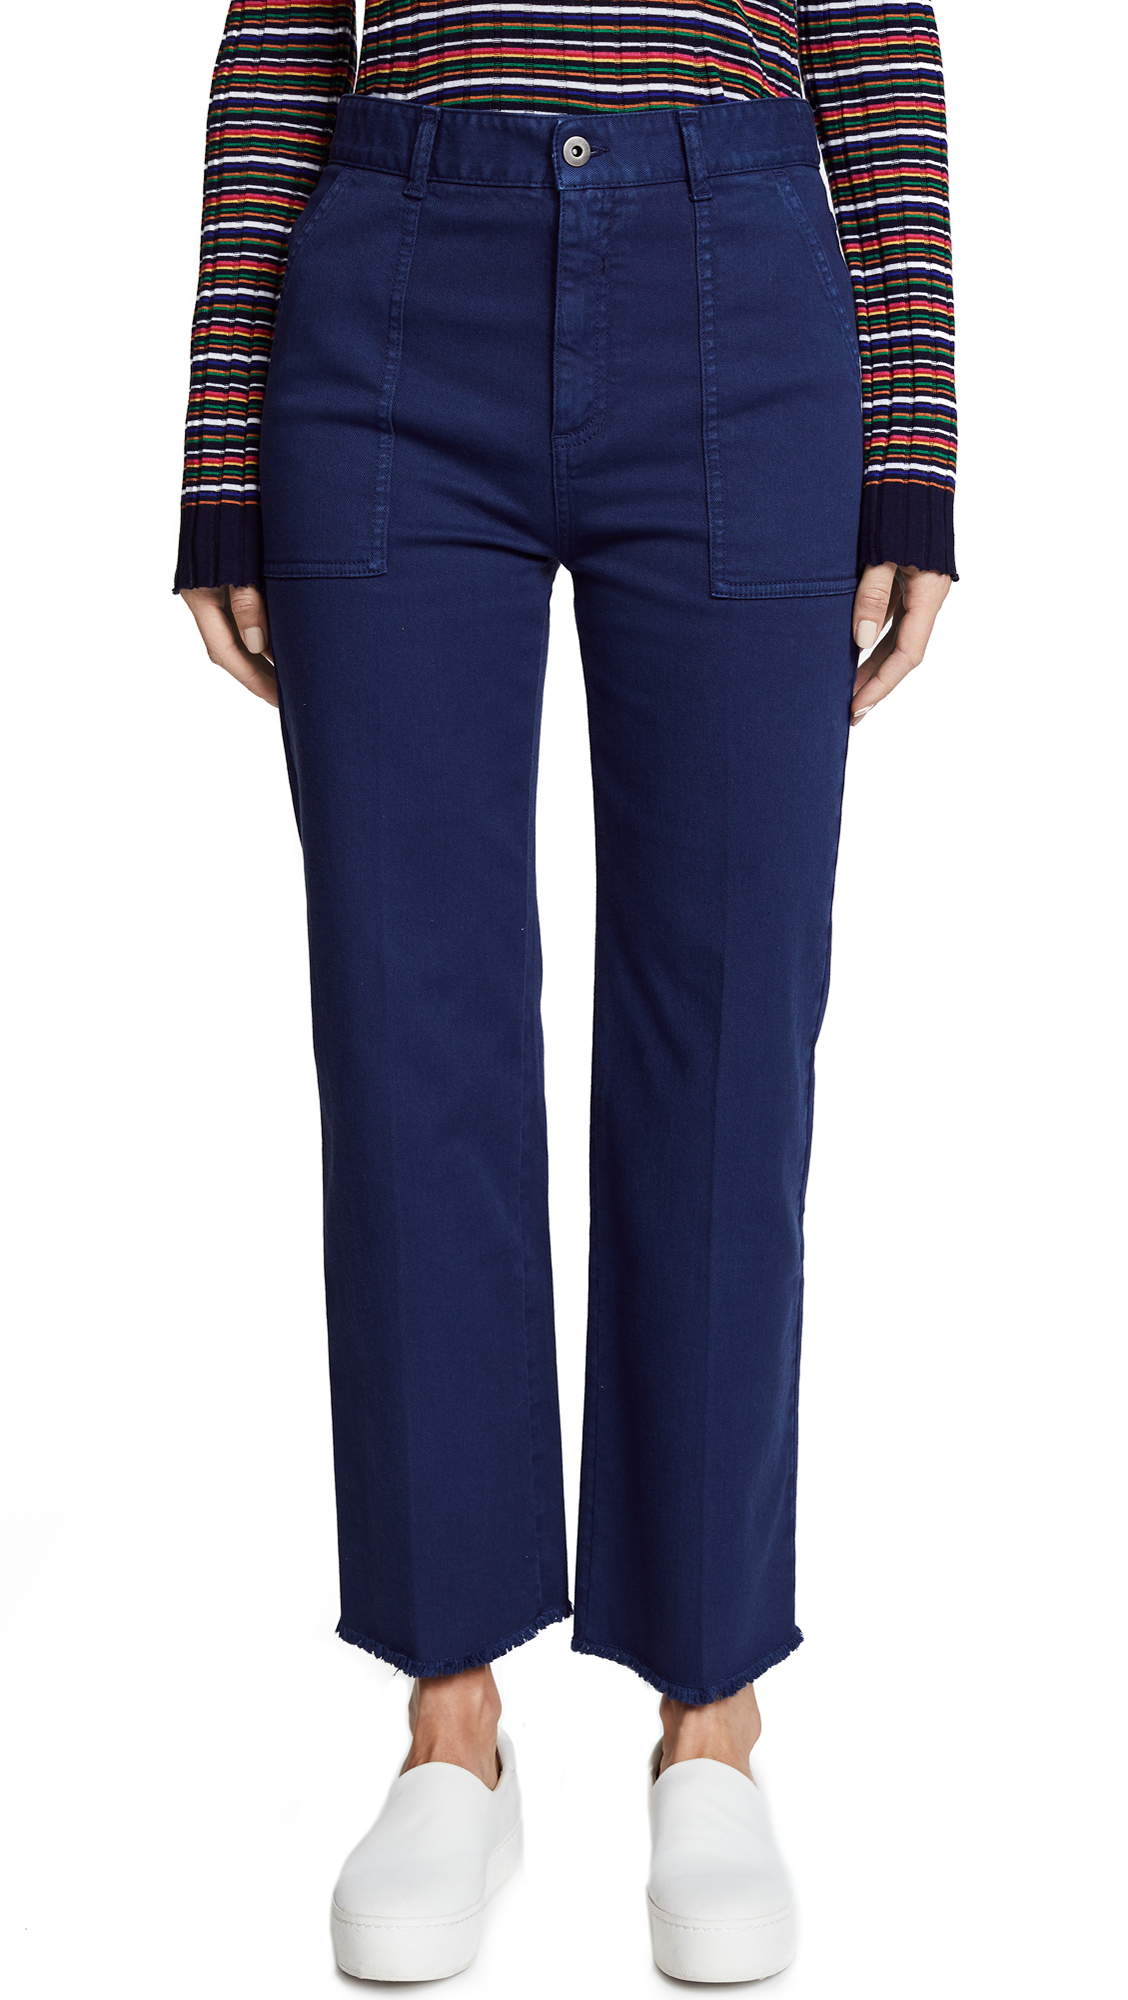 Stella McCartney Valeria Flare Jeans - Midnight